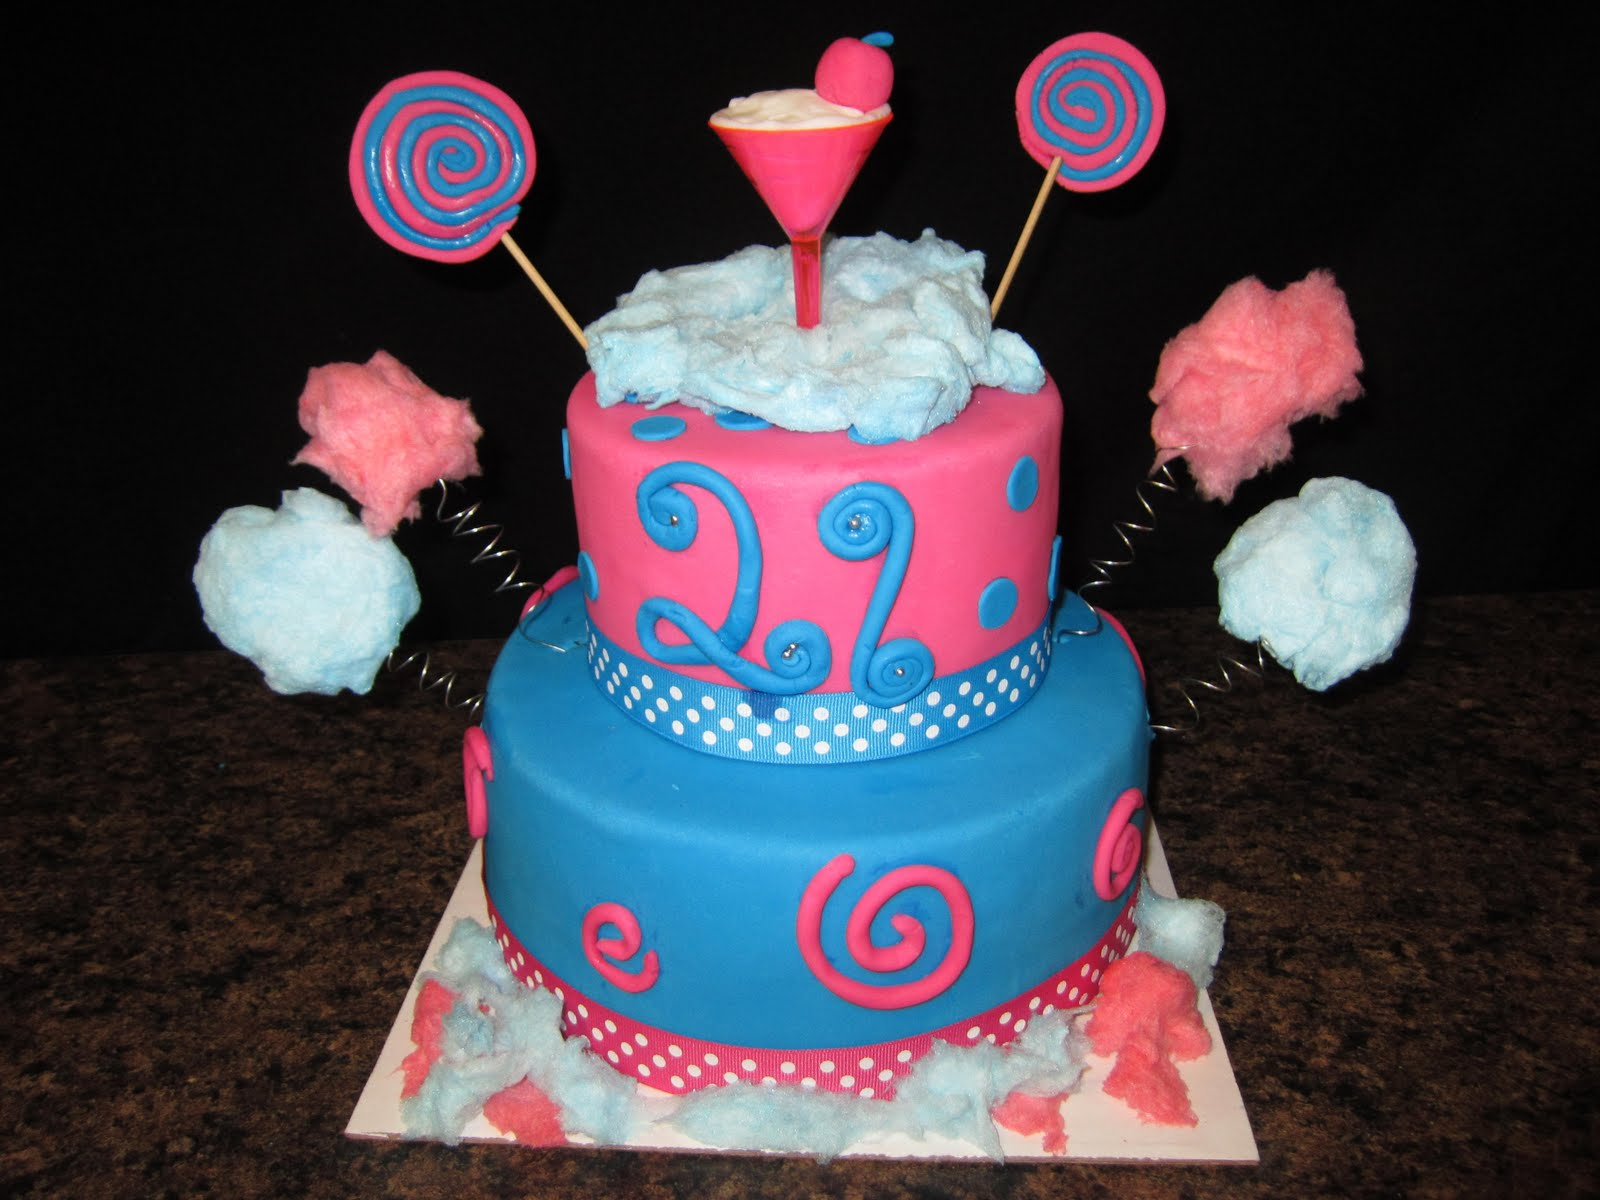 Sabtabulous Cakes Cotton Candykaty Perry Themed Cake